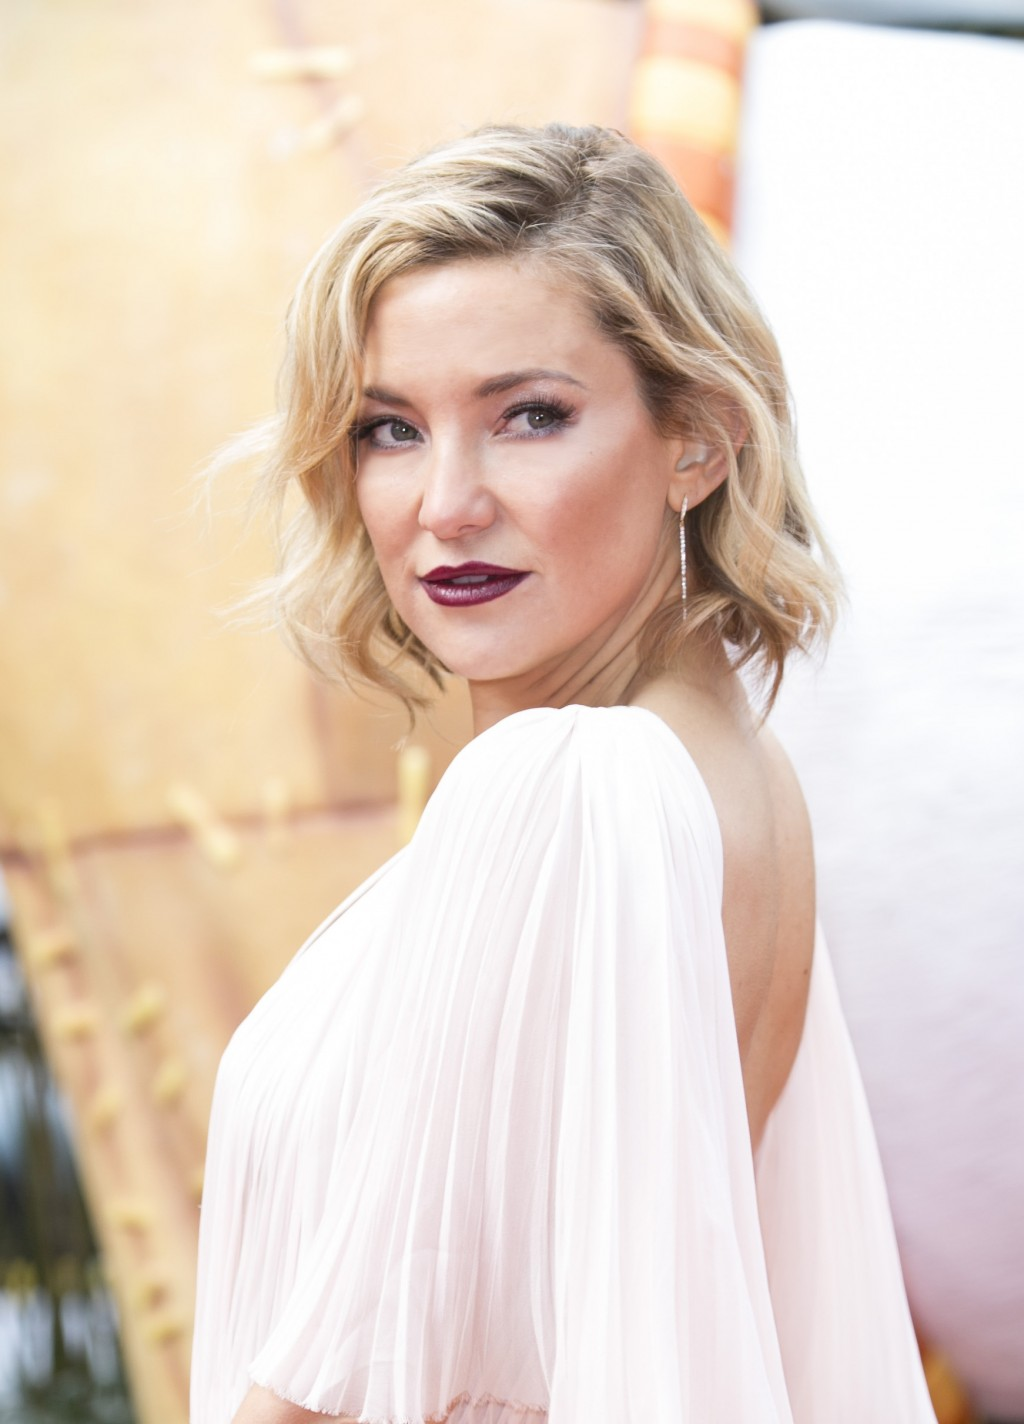 The Face Mask Kate Hudson Swears by for Glowing Skin